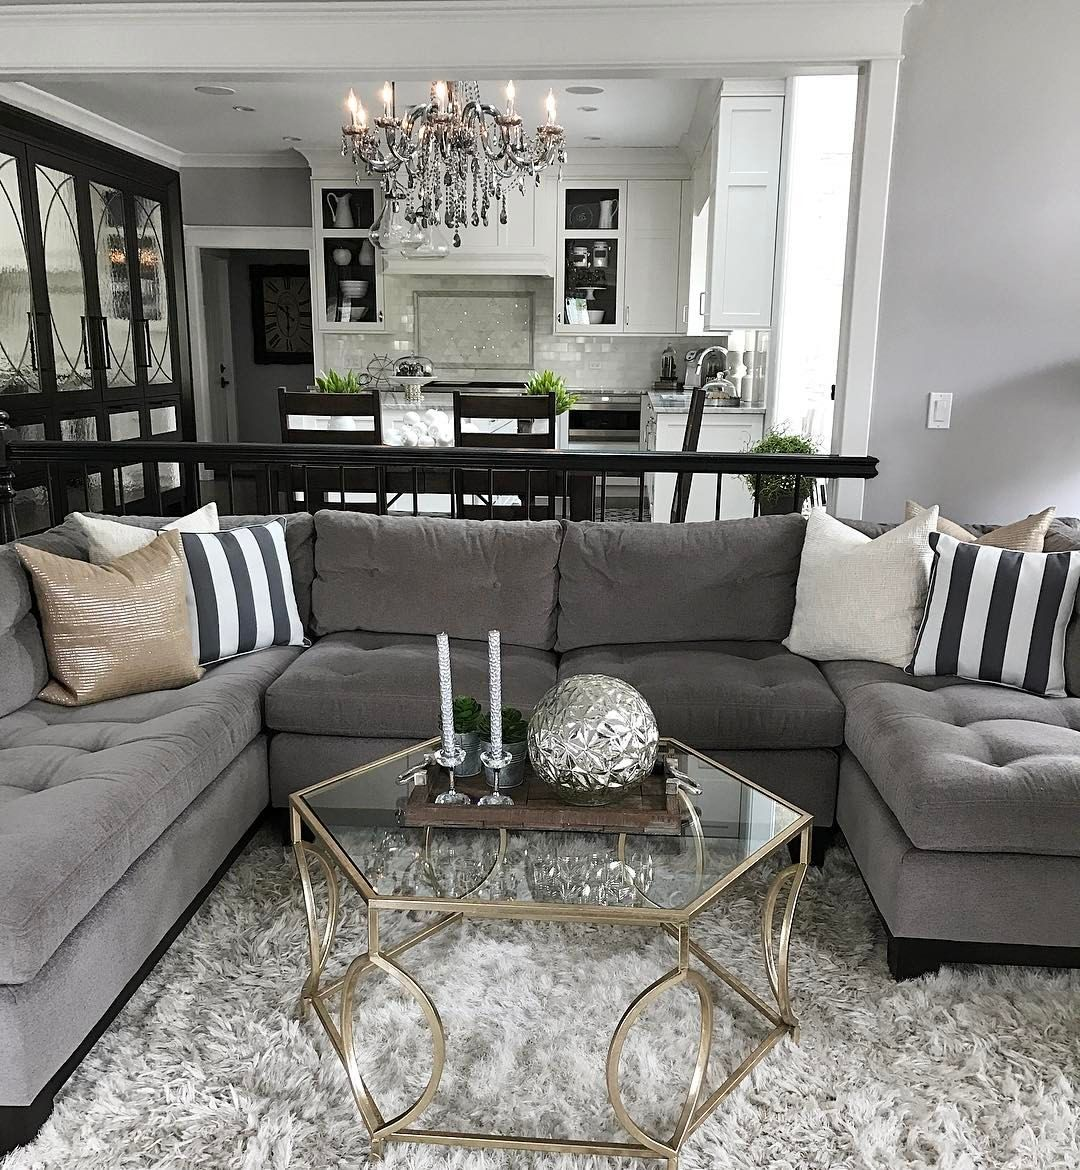 change up the gray couch with and chic black and white